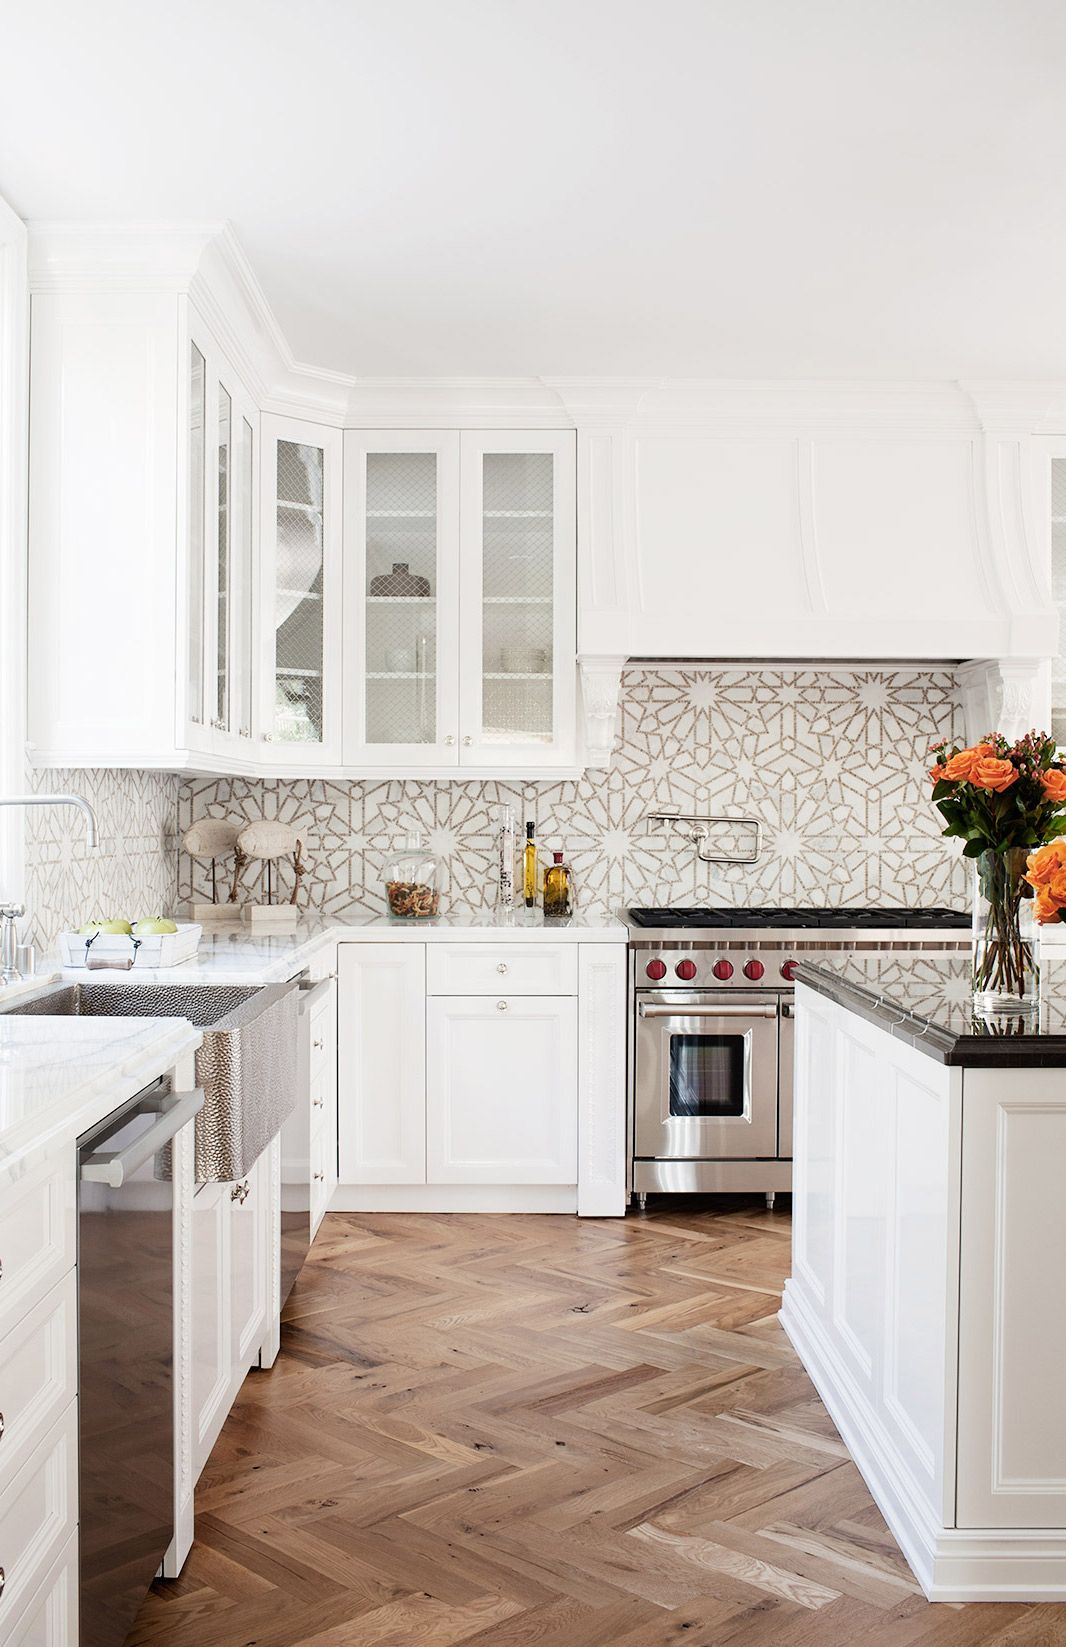 27 Kitchen Tile Backsplash Ideas We Love Beautiful Kitchens